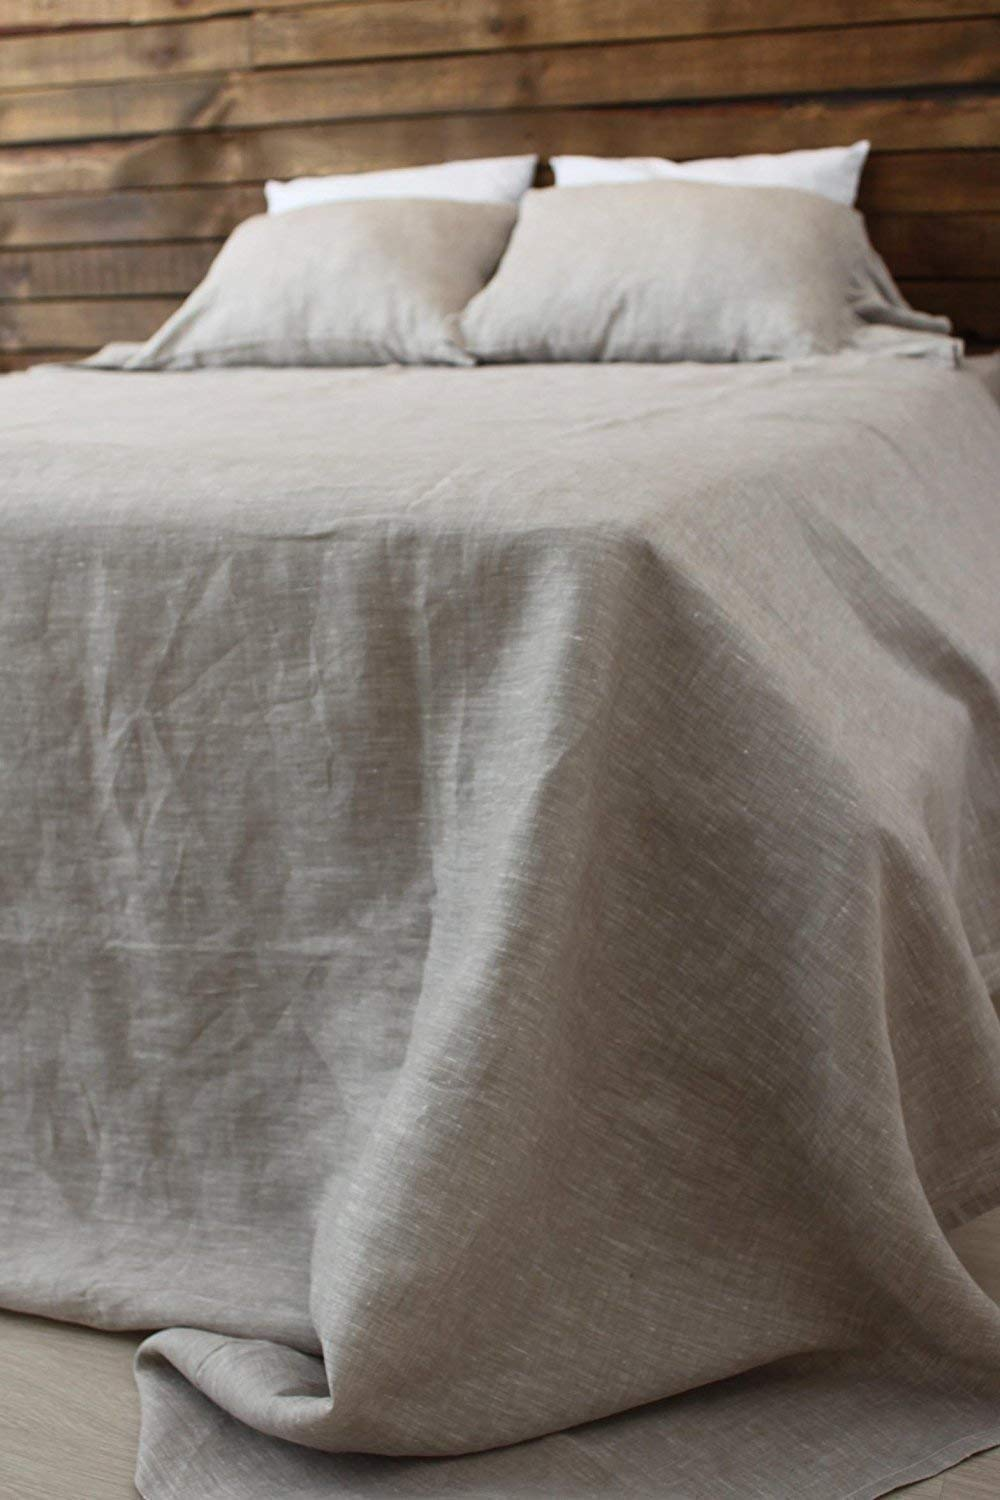 Natural Linen Bedding 4 pcs Set - Flat Sheet, Fitted Sheet, 2 Pillowcases - Different Sizes - in Natural, White and Grey Colors